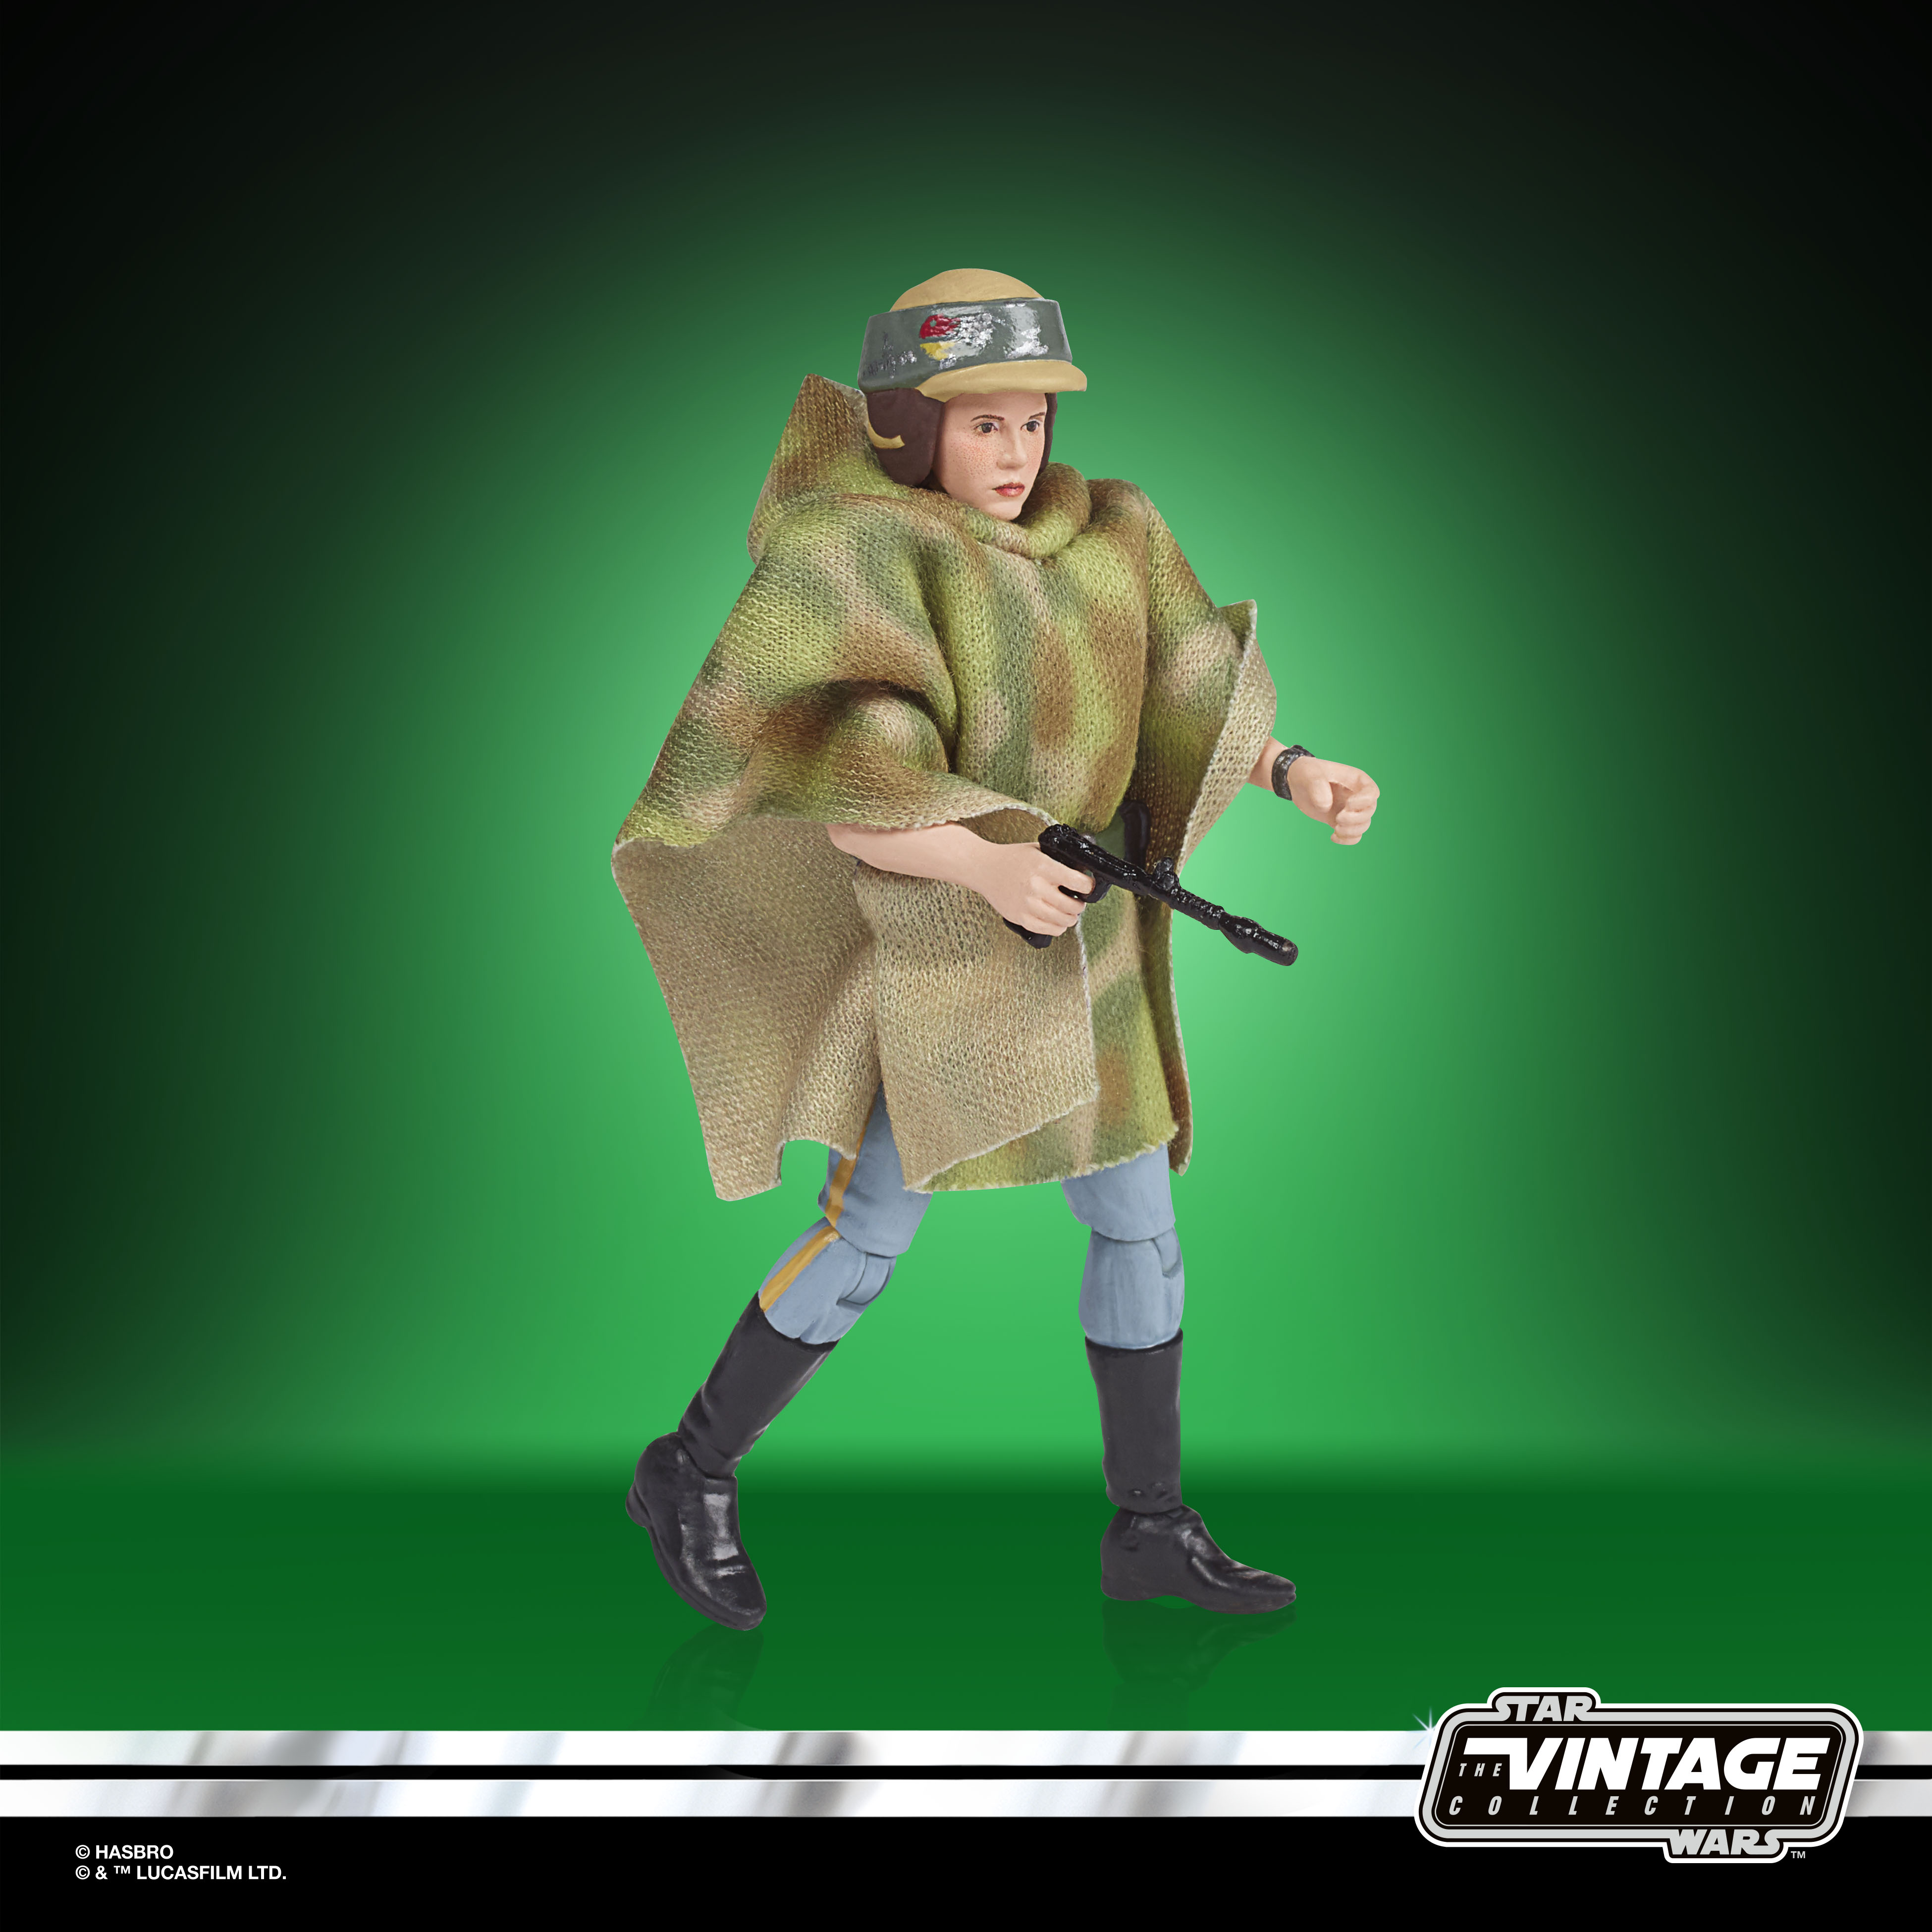 STAR WARS THE VINTAGE COLLECTION LUCASFILM FIRST 50 YEARS 3.75-INCH PRINCESS LEIA (ENDOR) Figure – oop(4)